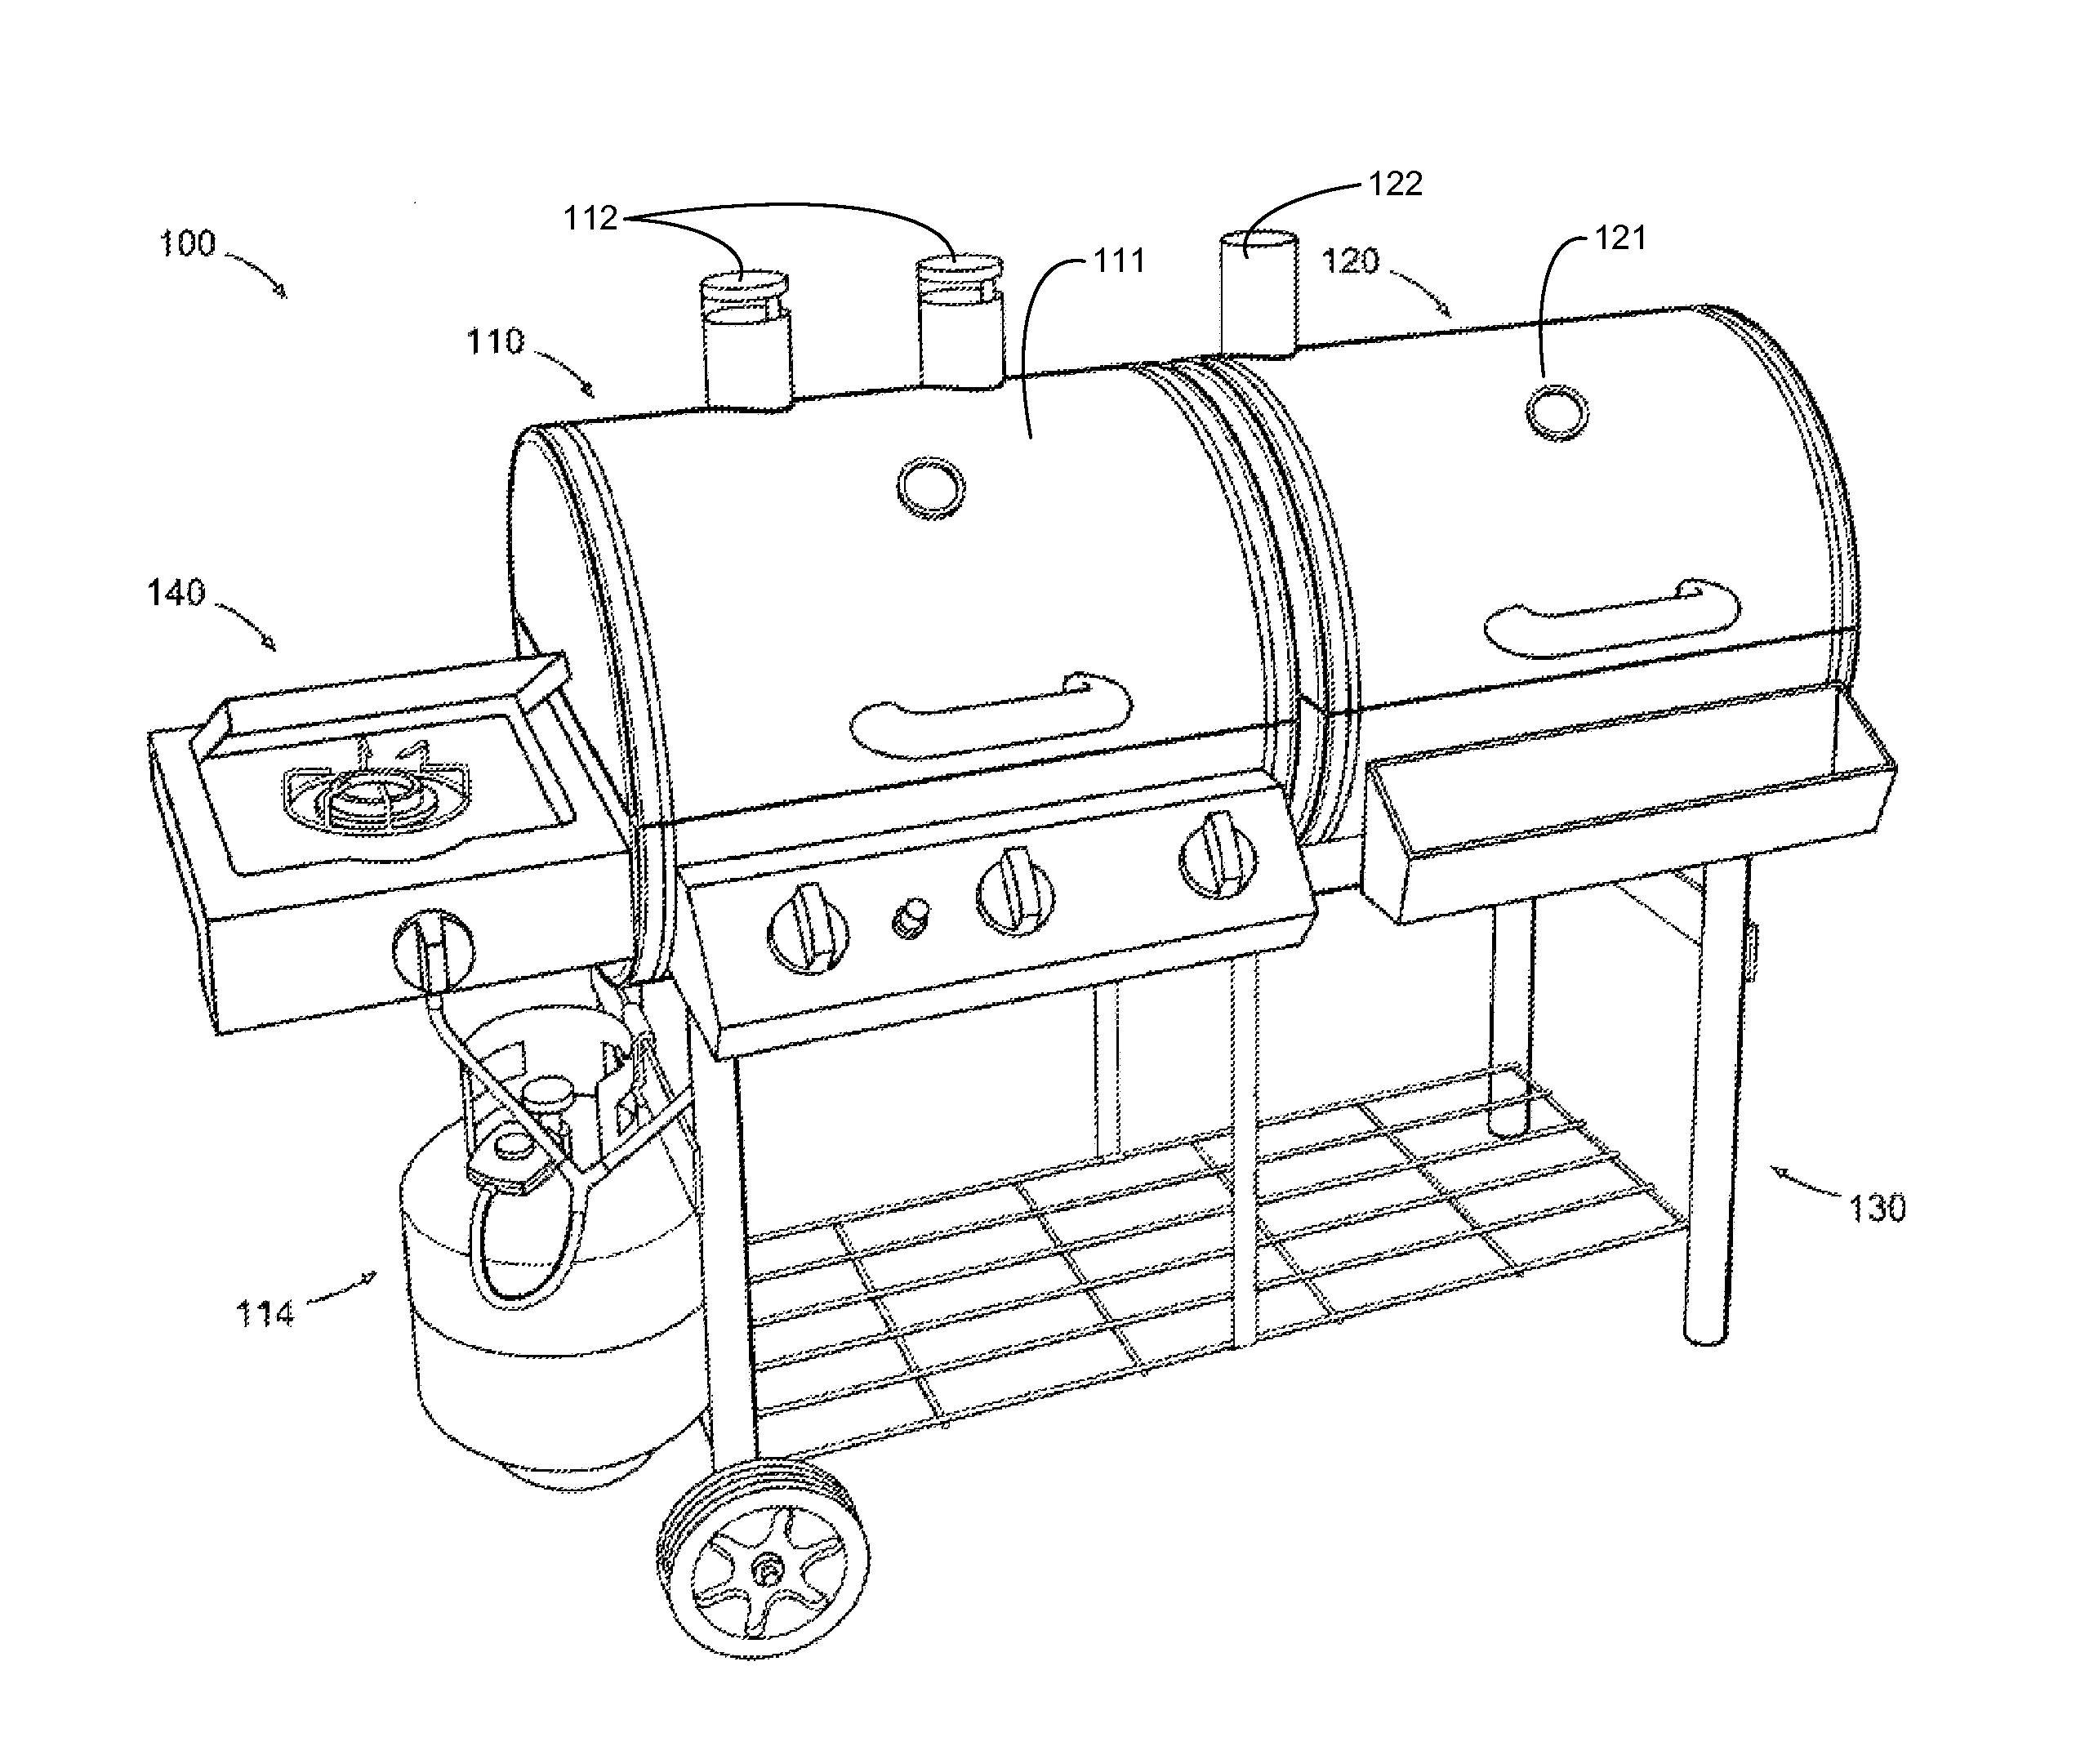 Patent Us8381712 Simultaneous Multiple Cooking Mode Barbecue Grill Traeger 100 Wiring Diagram Drawing